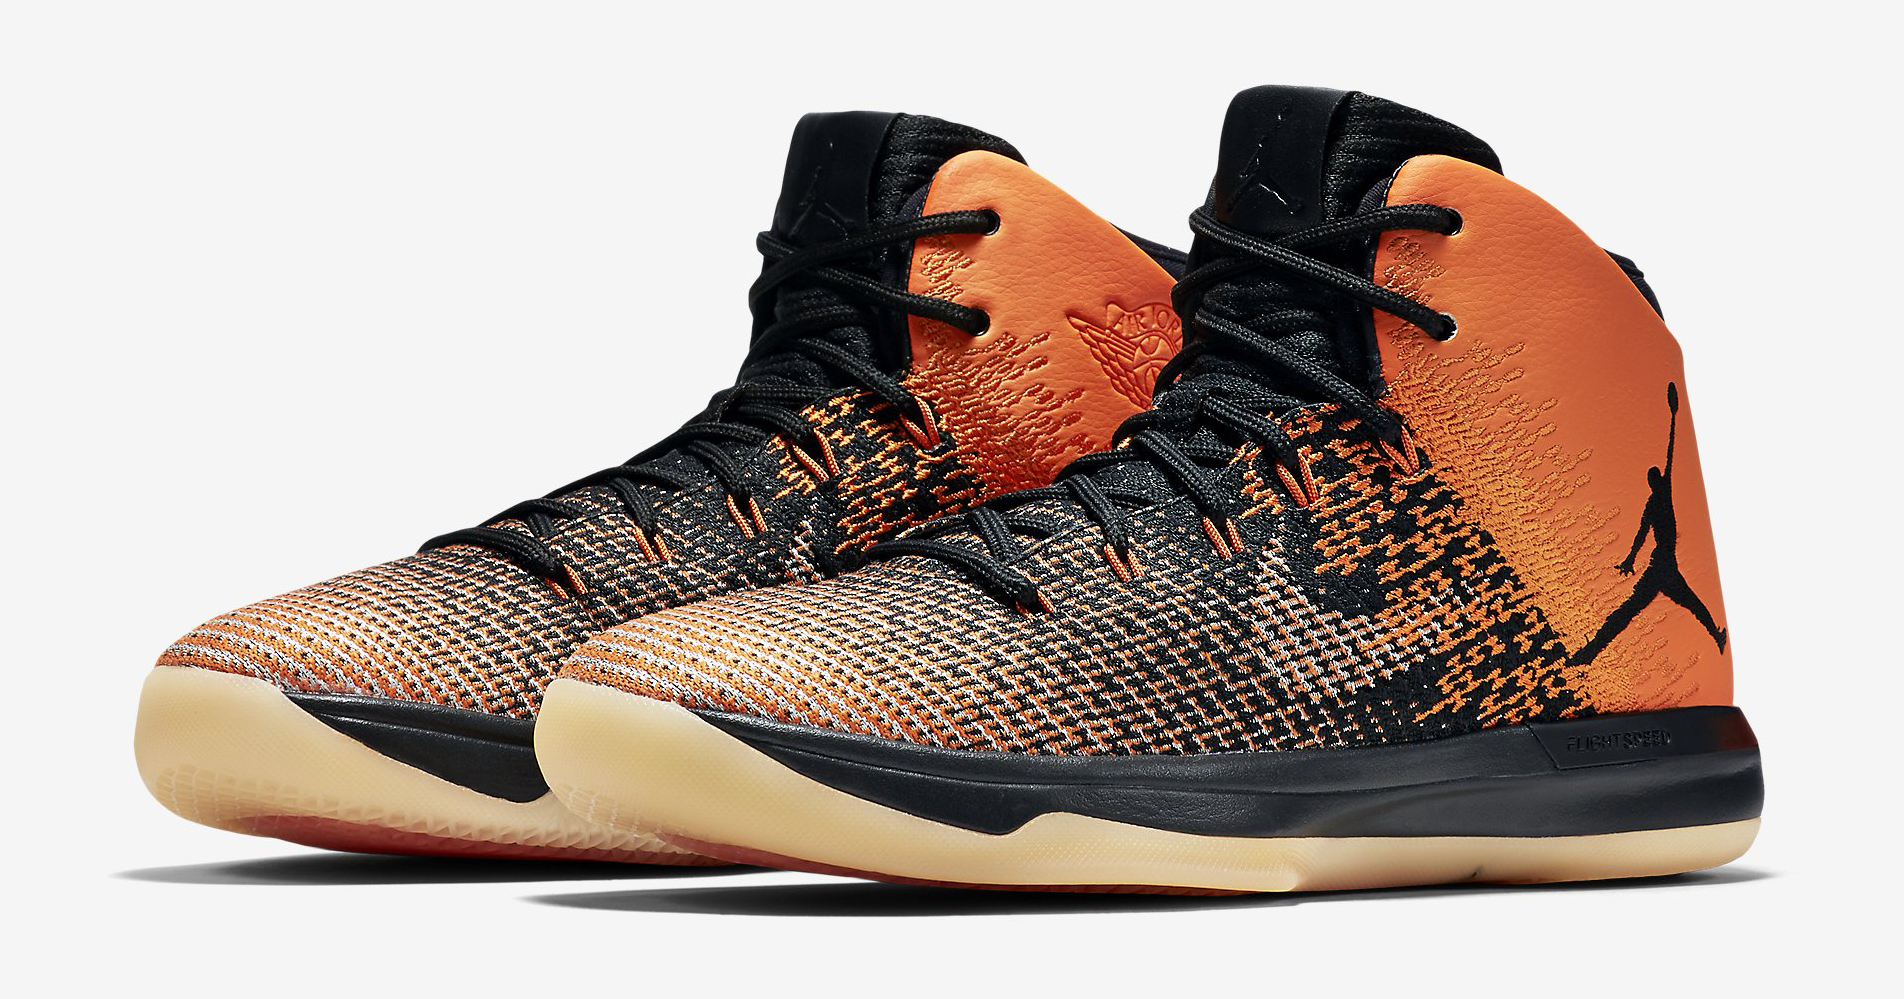 Shattered Backboard Air Jordan 31 845037-021